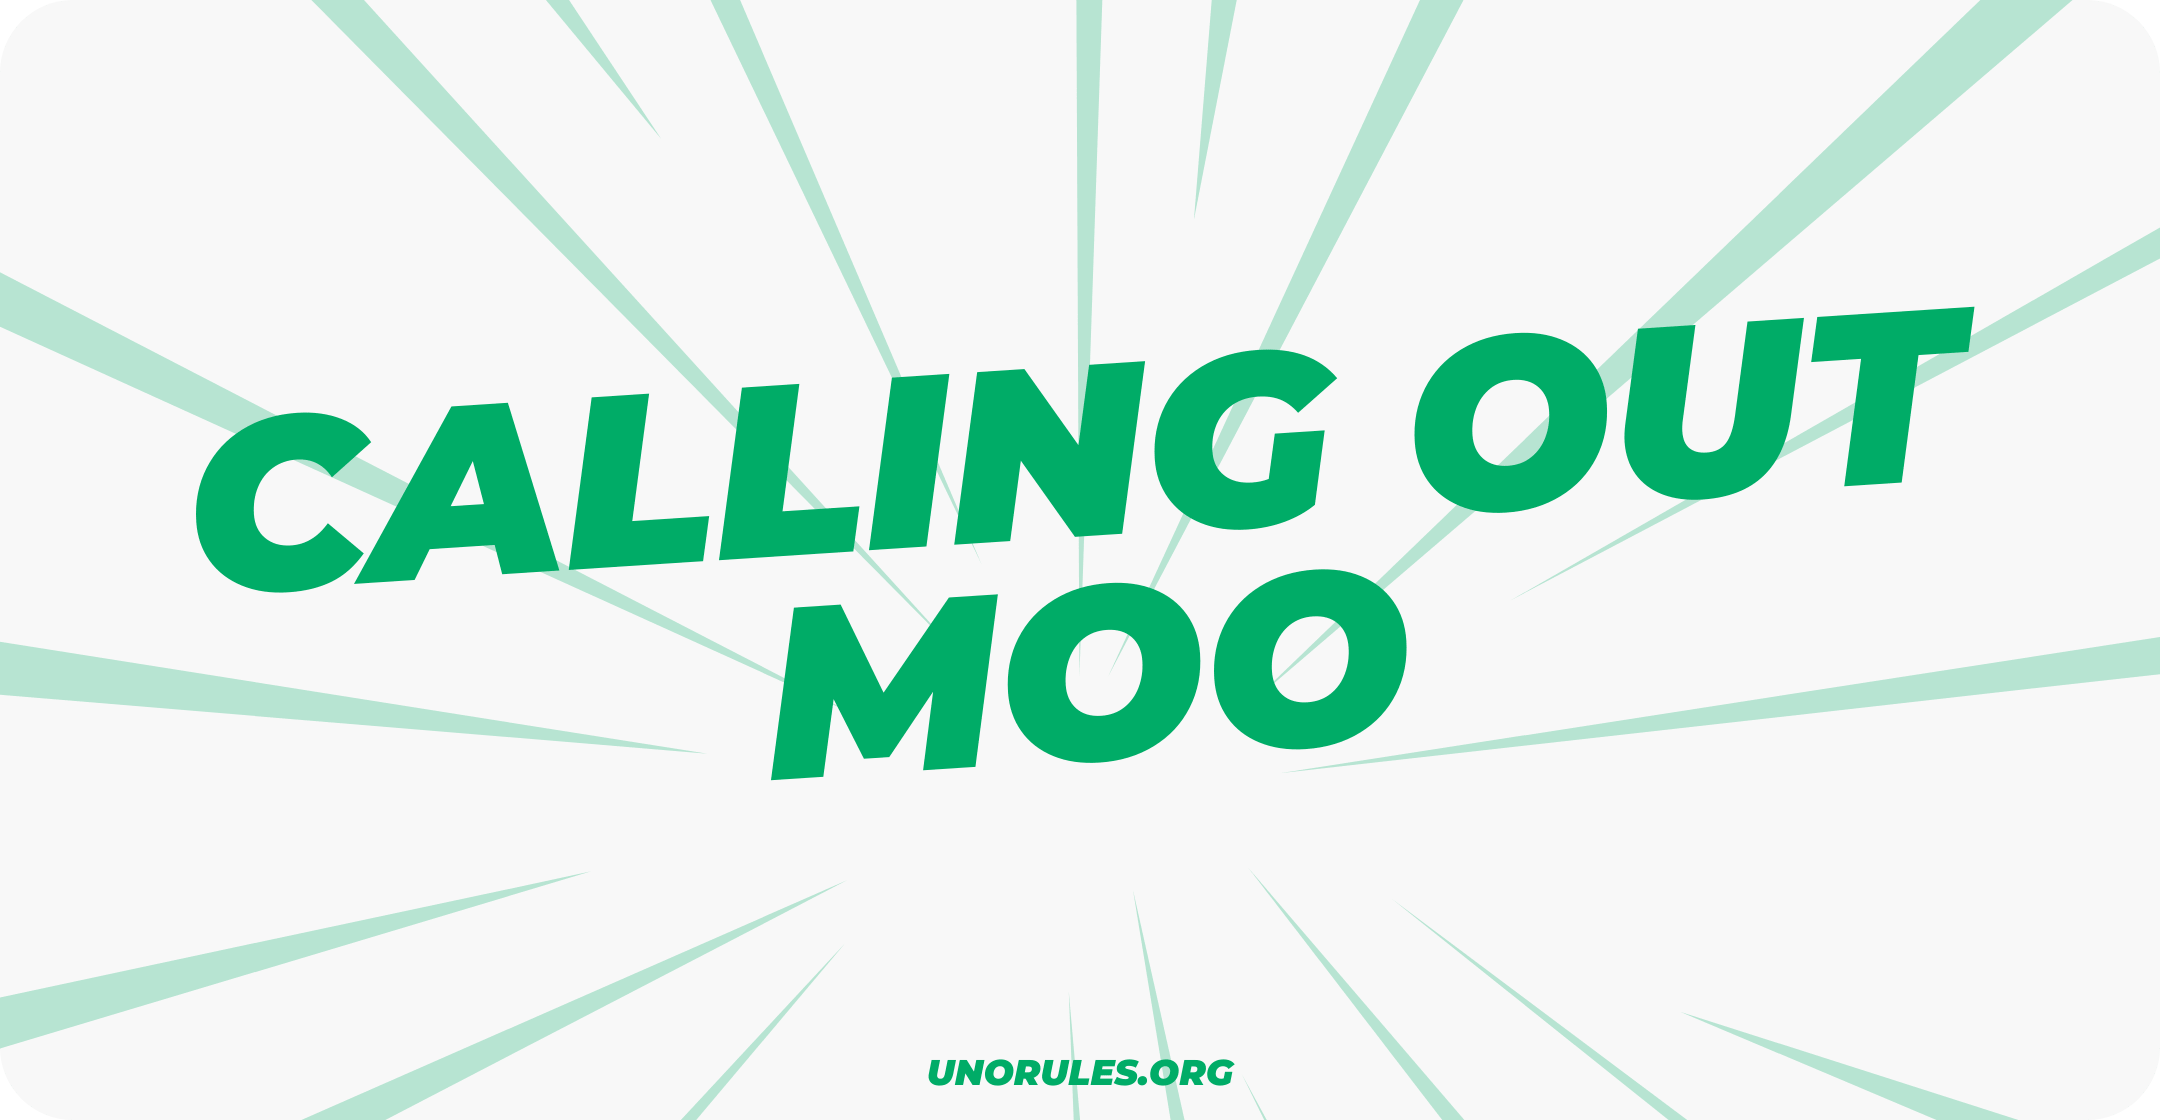 Calling out moo